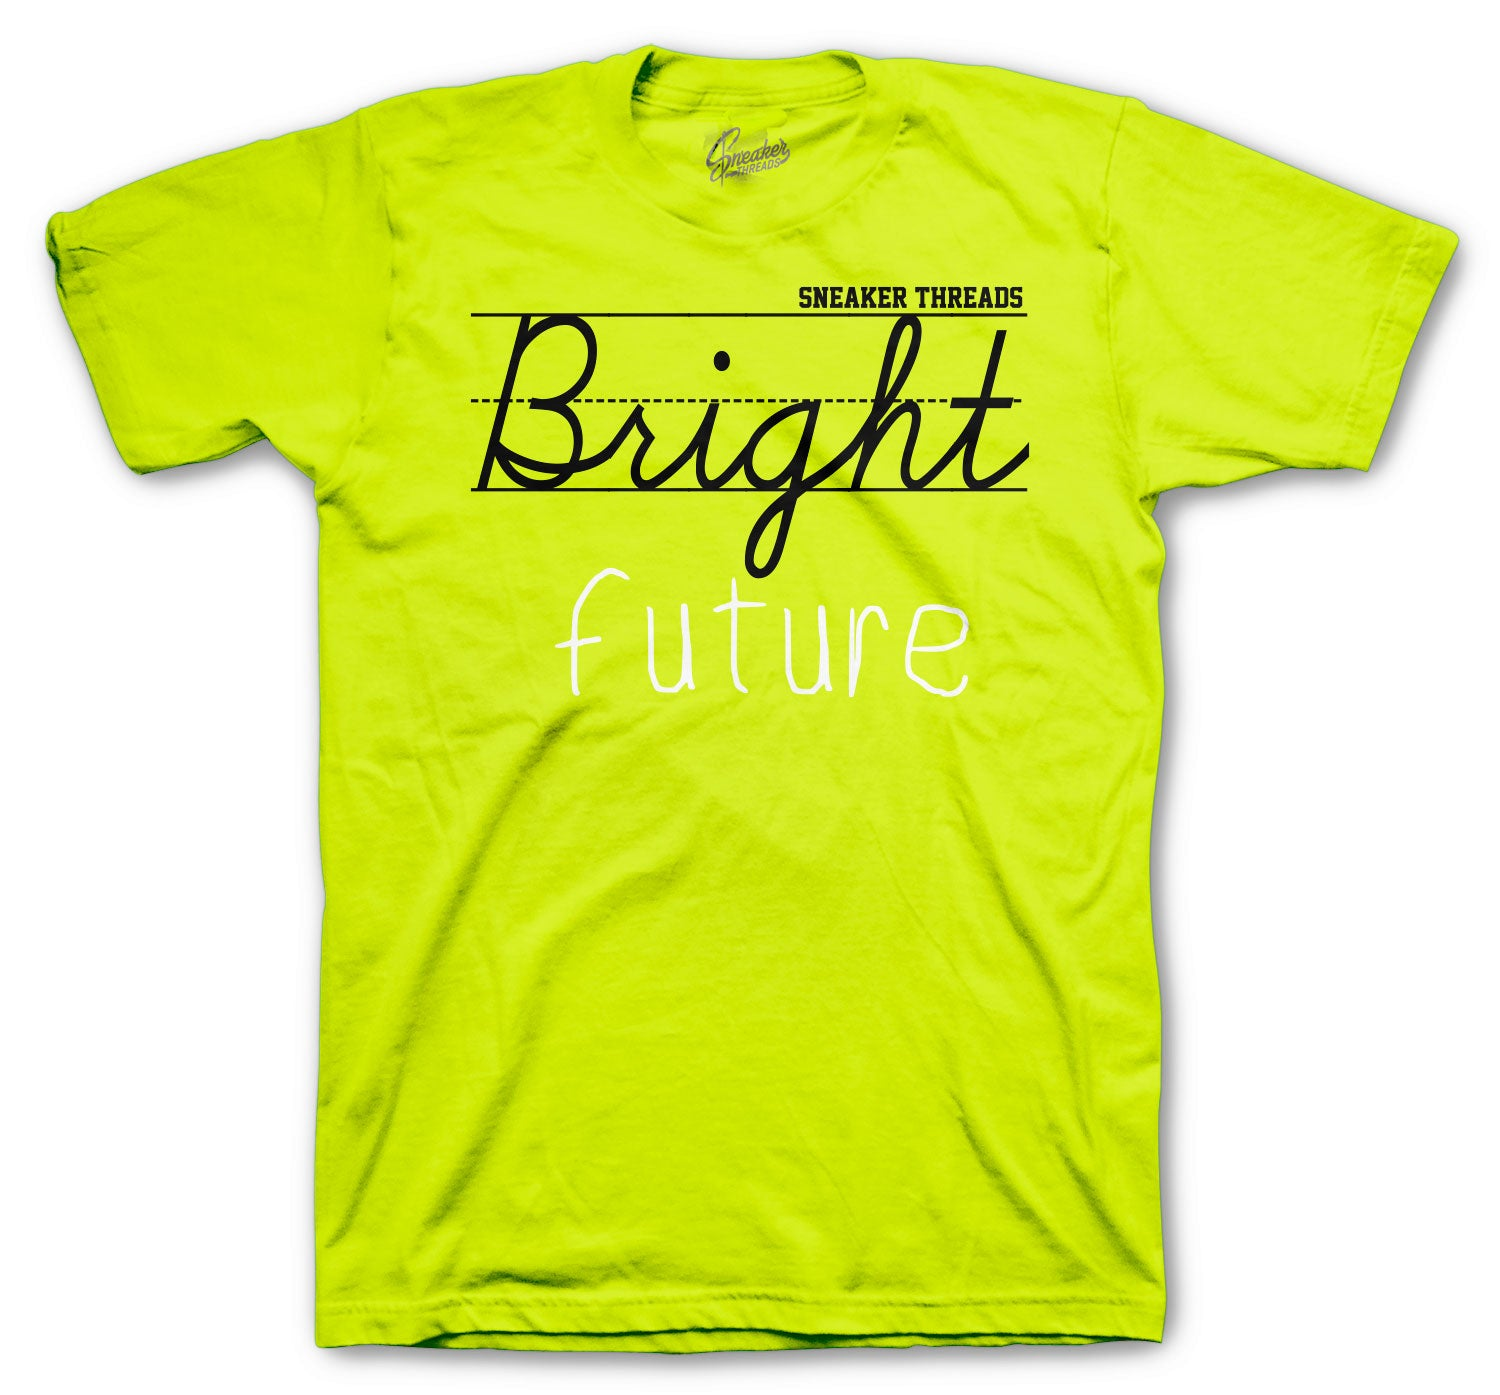 Foamposite Volt Bright Future Shirt